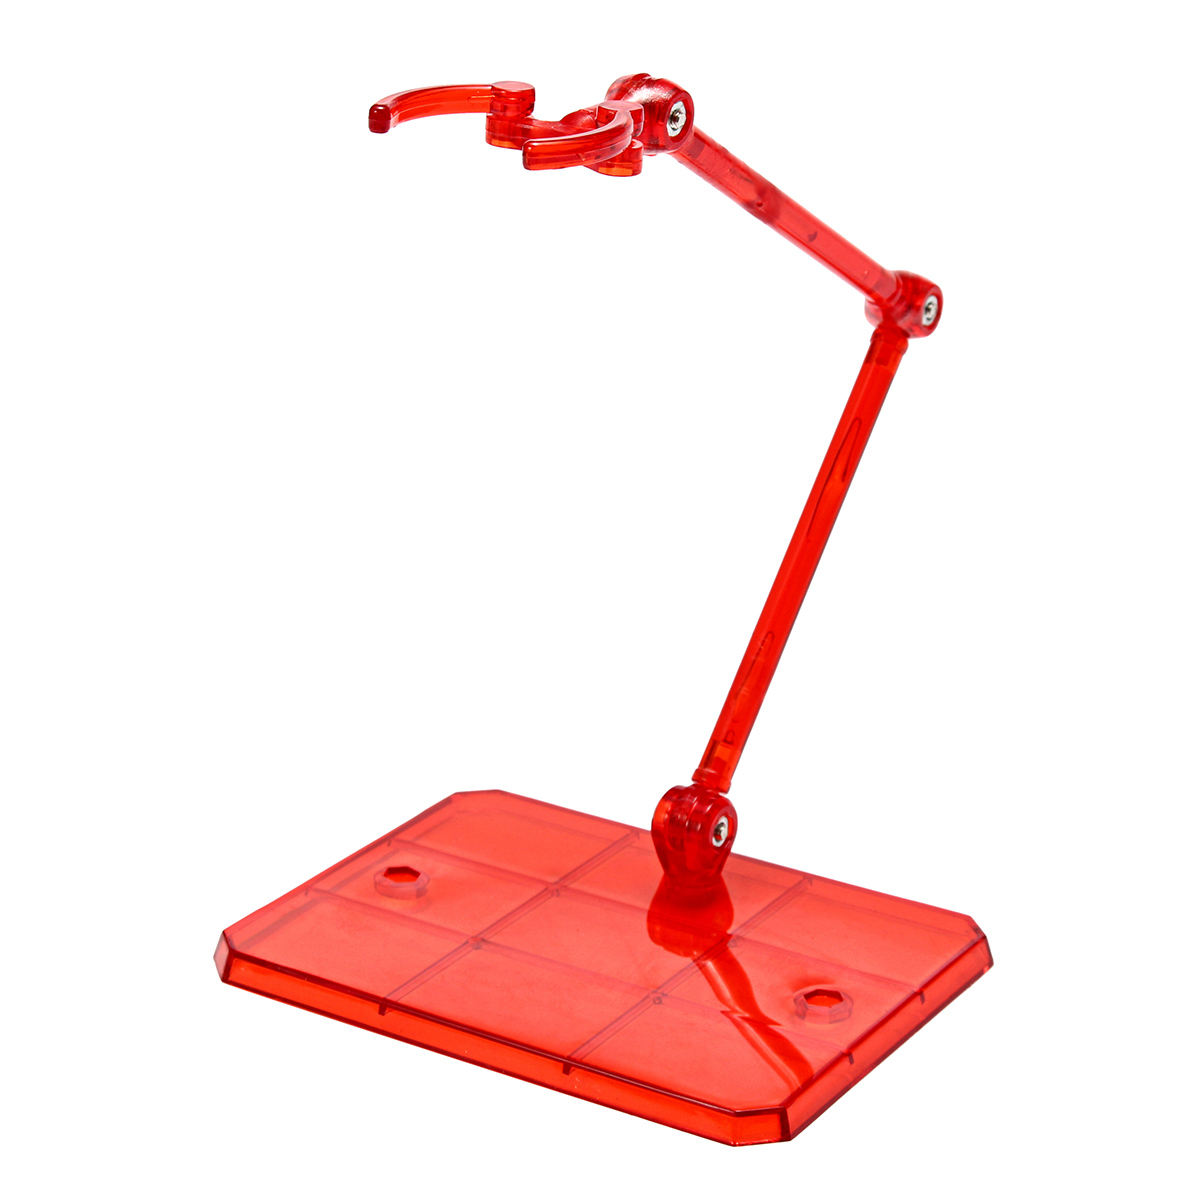 20 Pieces 1//6 Scale Male Female Doll Display Stand Holder for 12 Inch Models